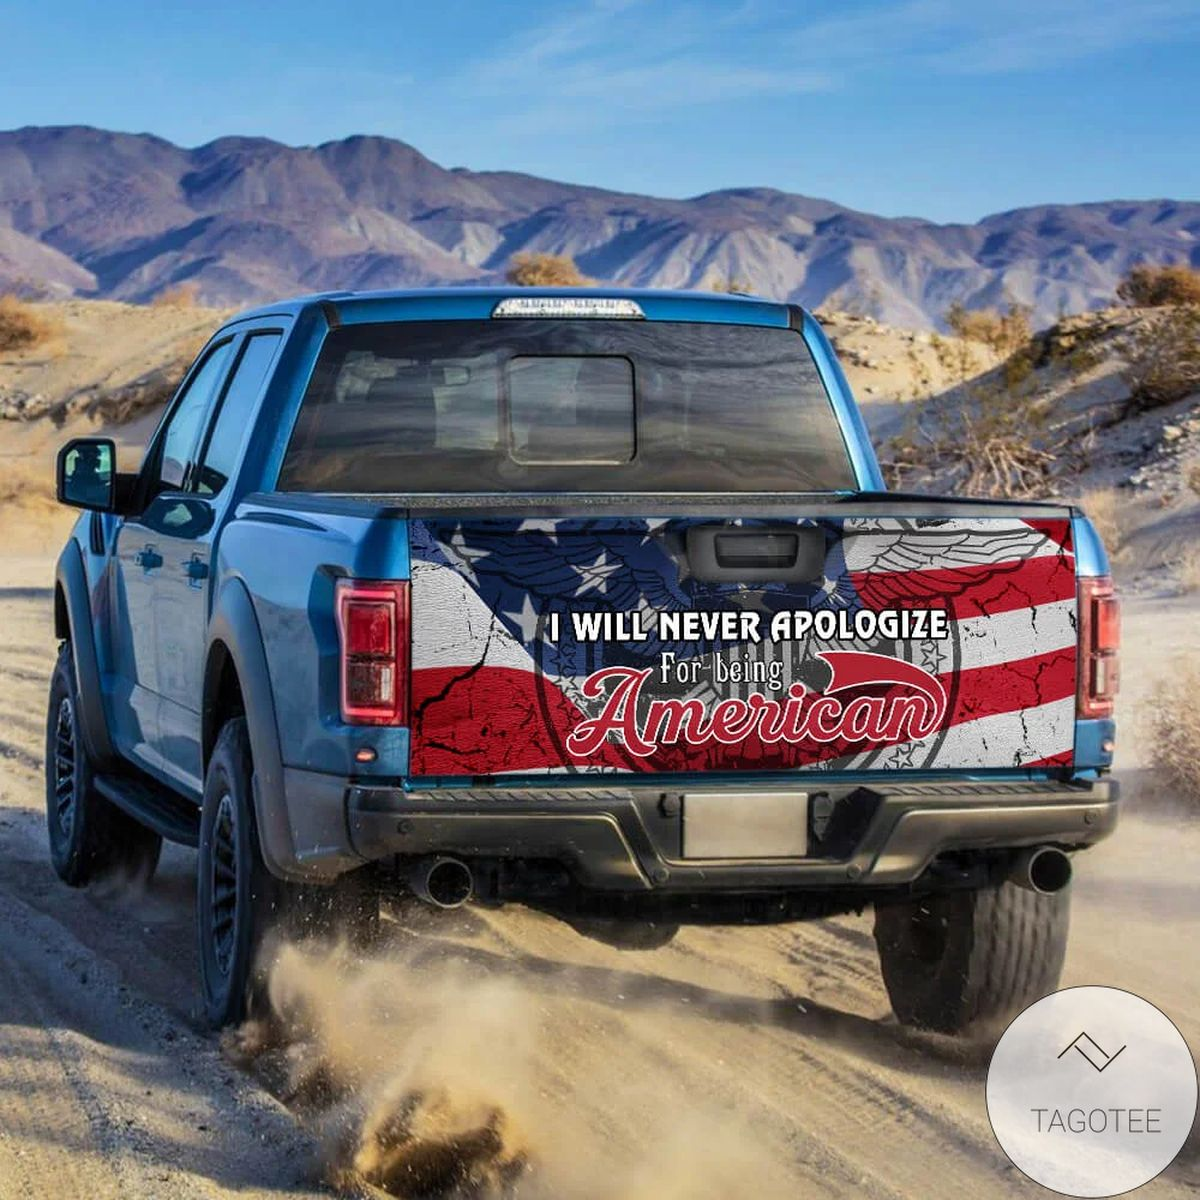 Best Shop I Will Never Apologize For Being American Truck Tailgate Decal Sticker Wrap